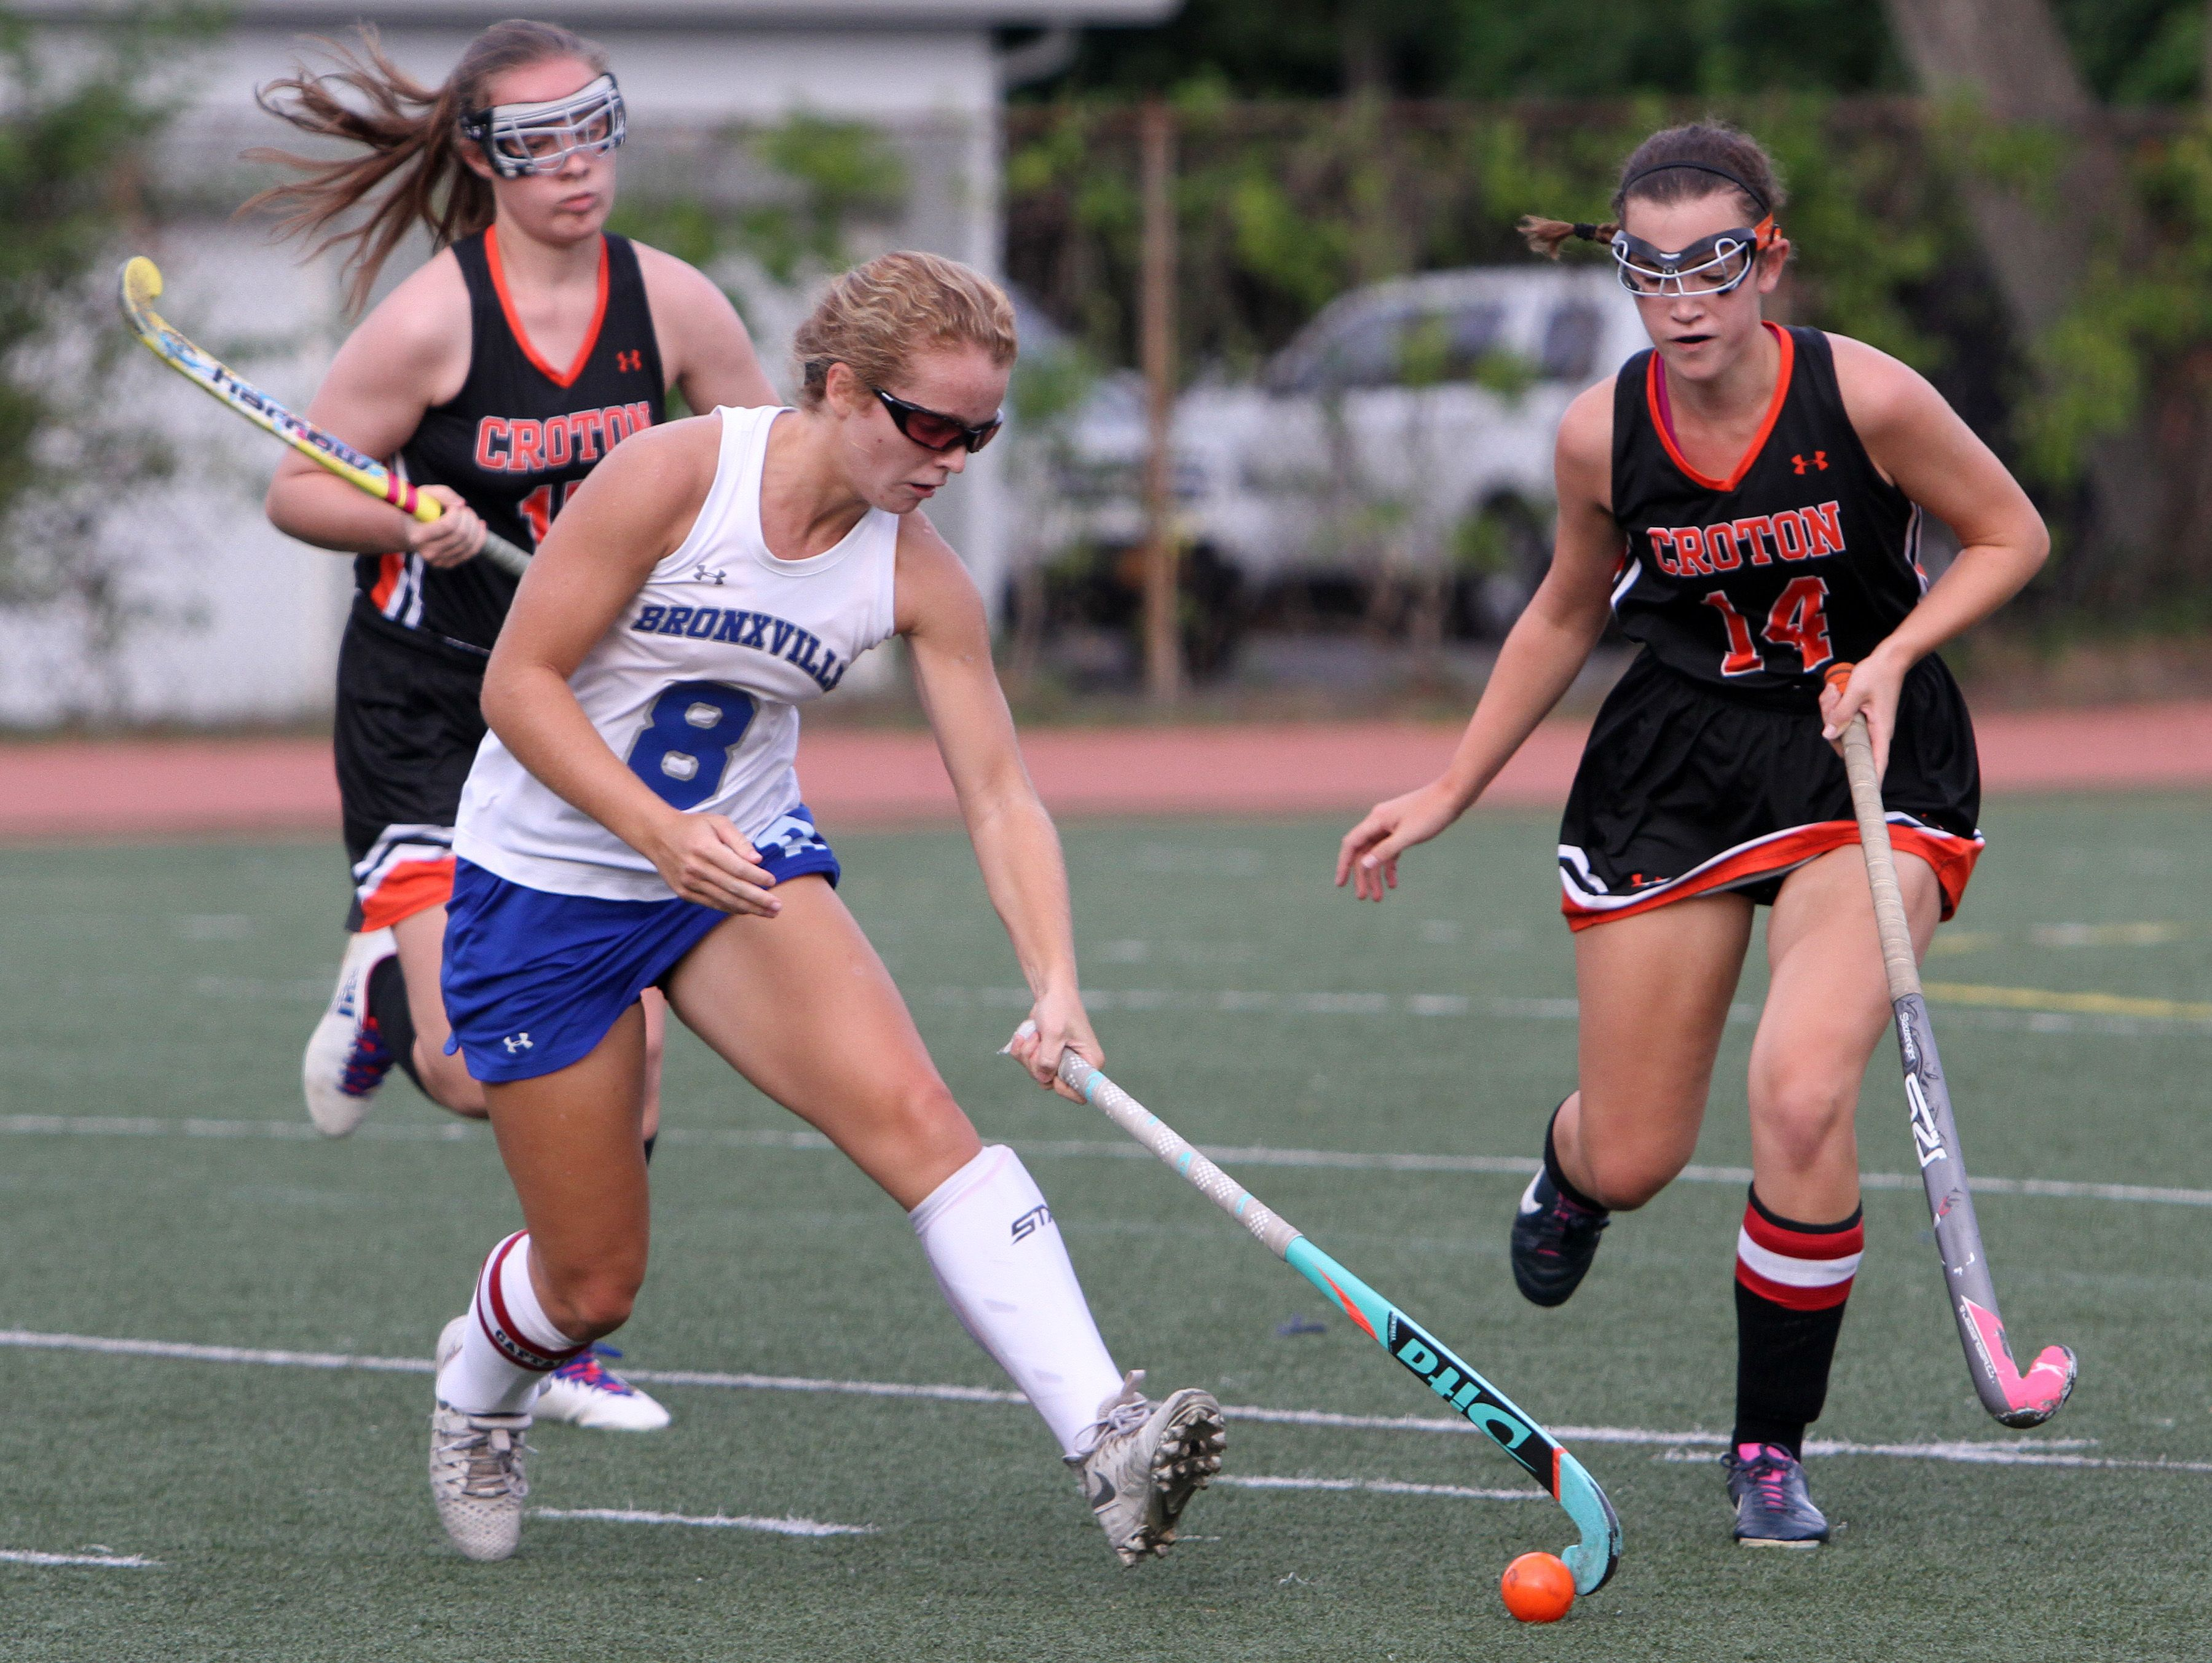 Bronxville defeated Croton 3-1 in field hockey action at Bronxville High School Sept. 20, 2016.